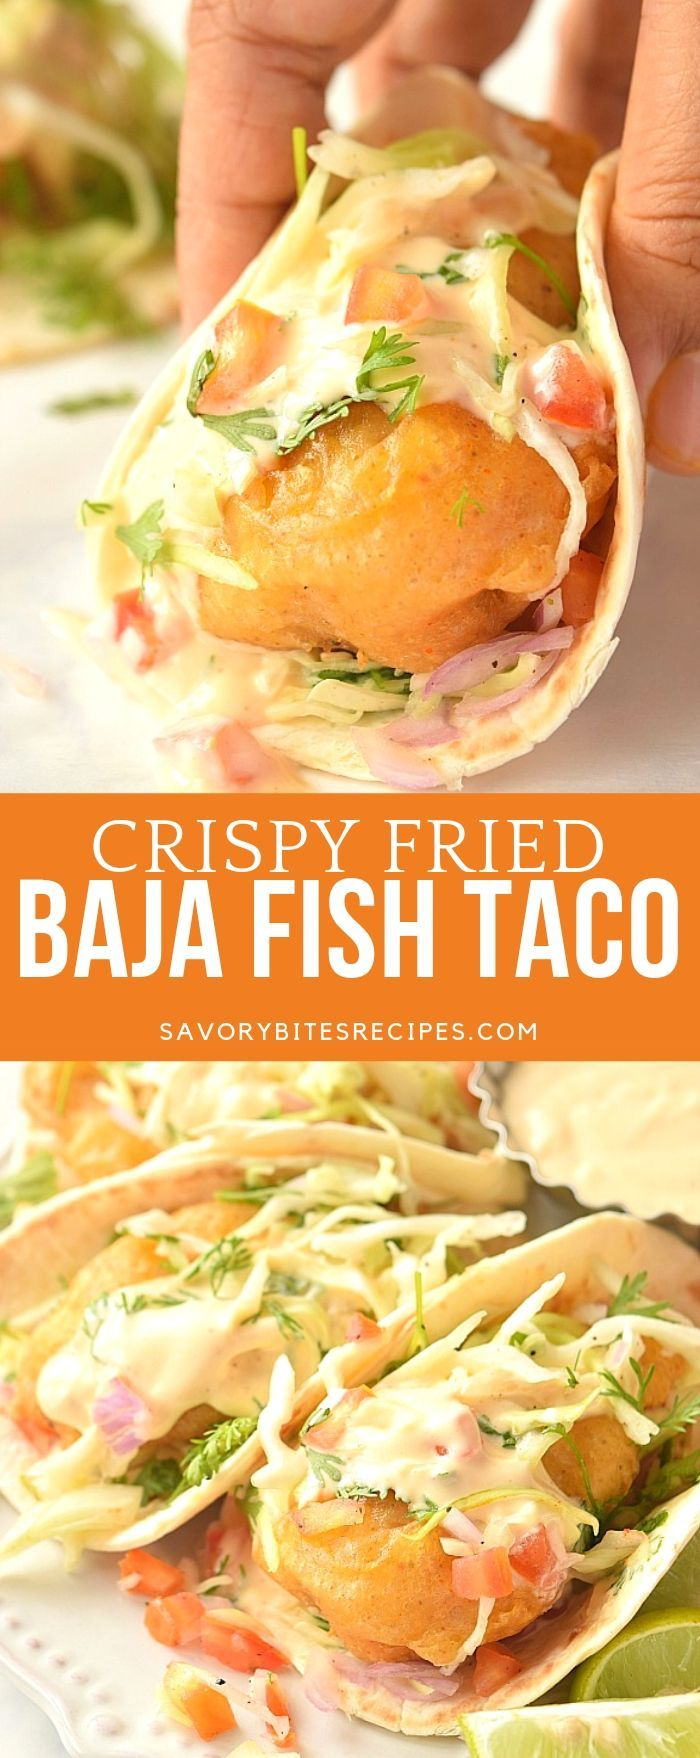 Best Baja Fish Taco! #mexicanshrimprecipes